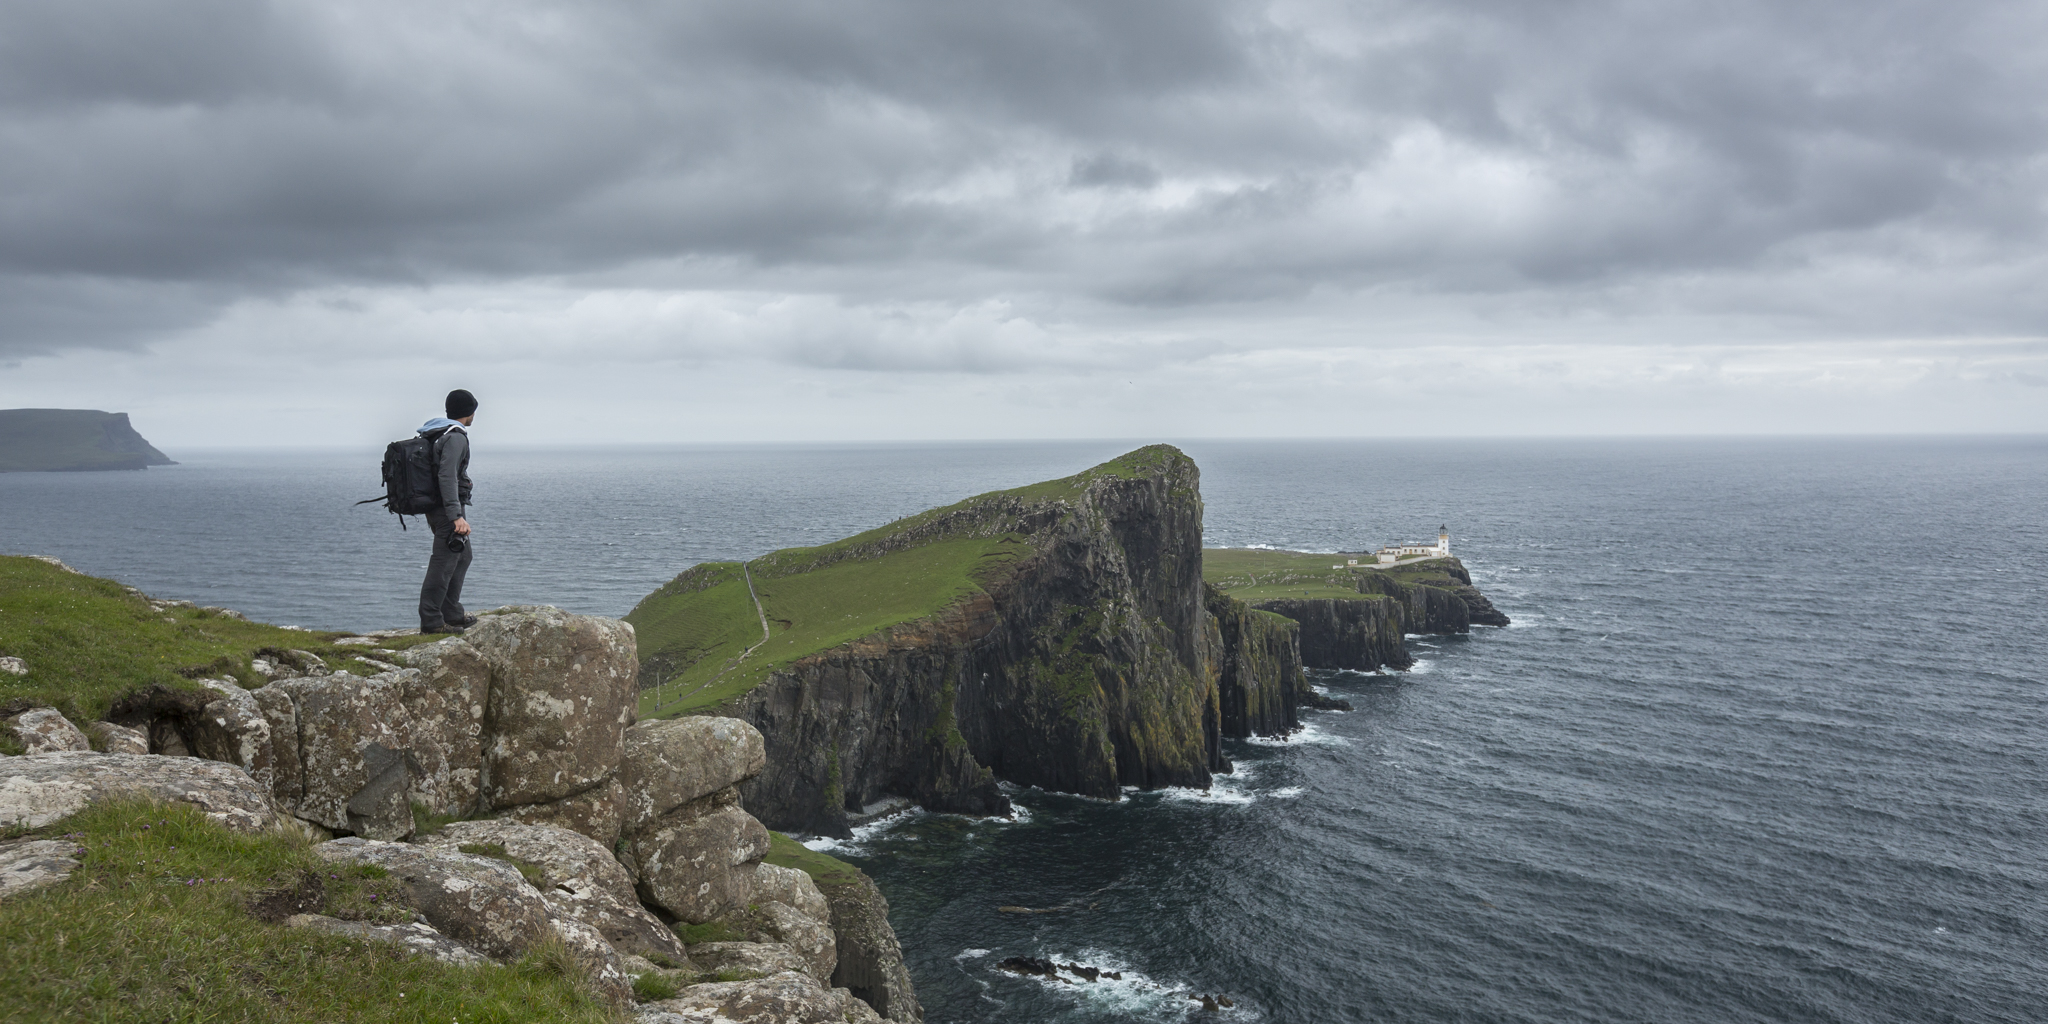 Shooting at Neist Point